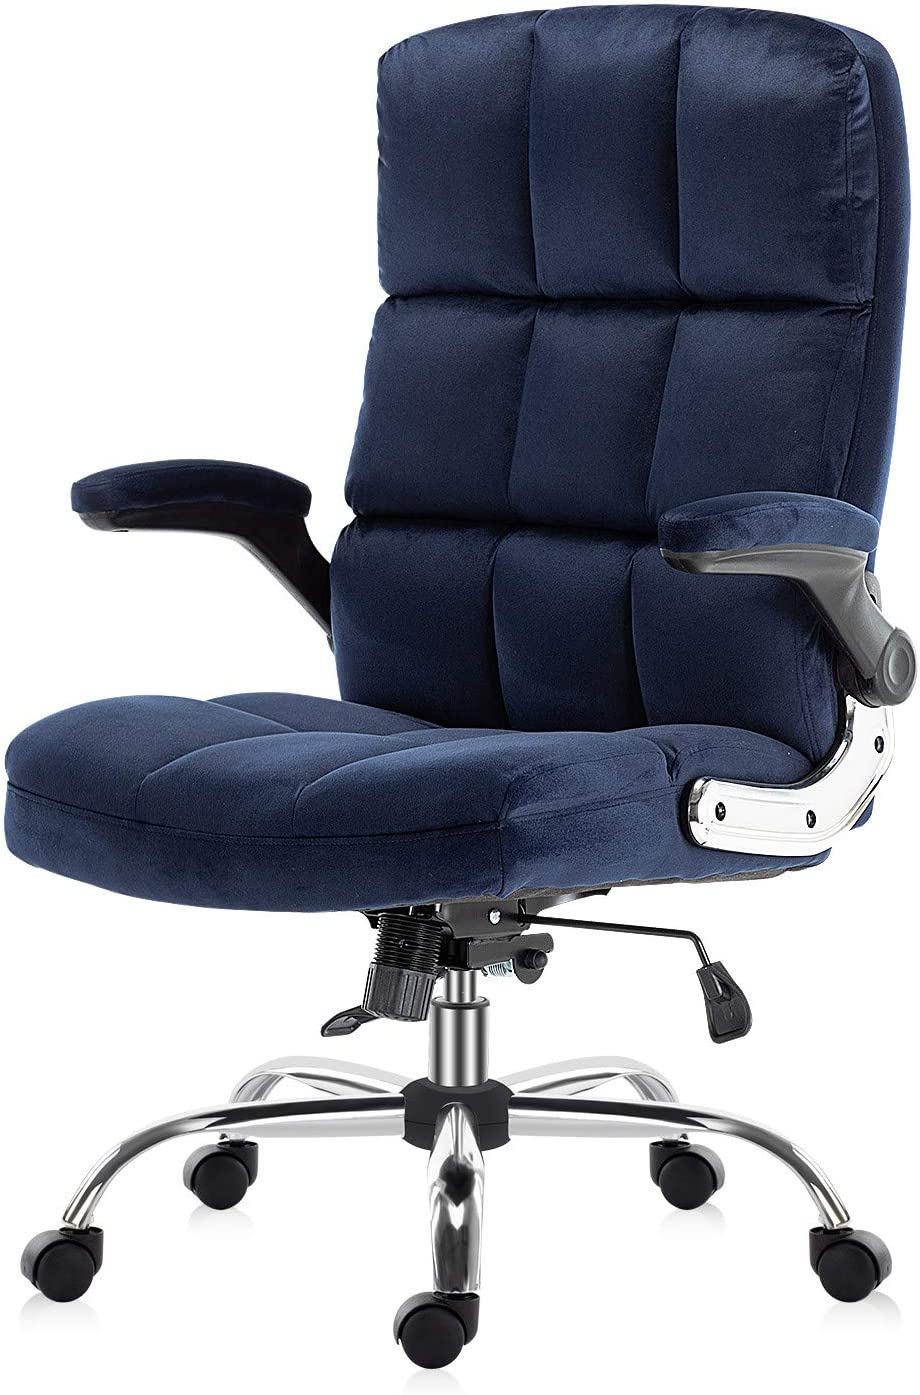 SP Velvet Office Chair Adjustable Tilt Angle and Flip-up Arms Executive Computer Desk Chair, Thick Padding for Comfort and Ergonomic Design for Lumbar Support (3288RW)